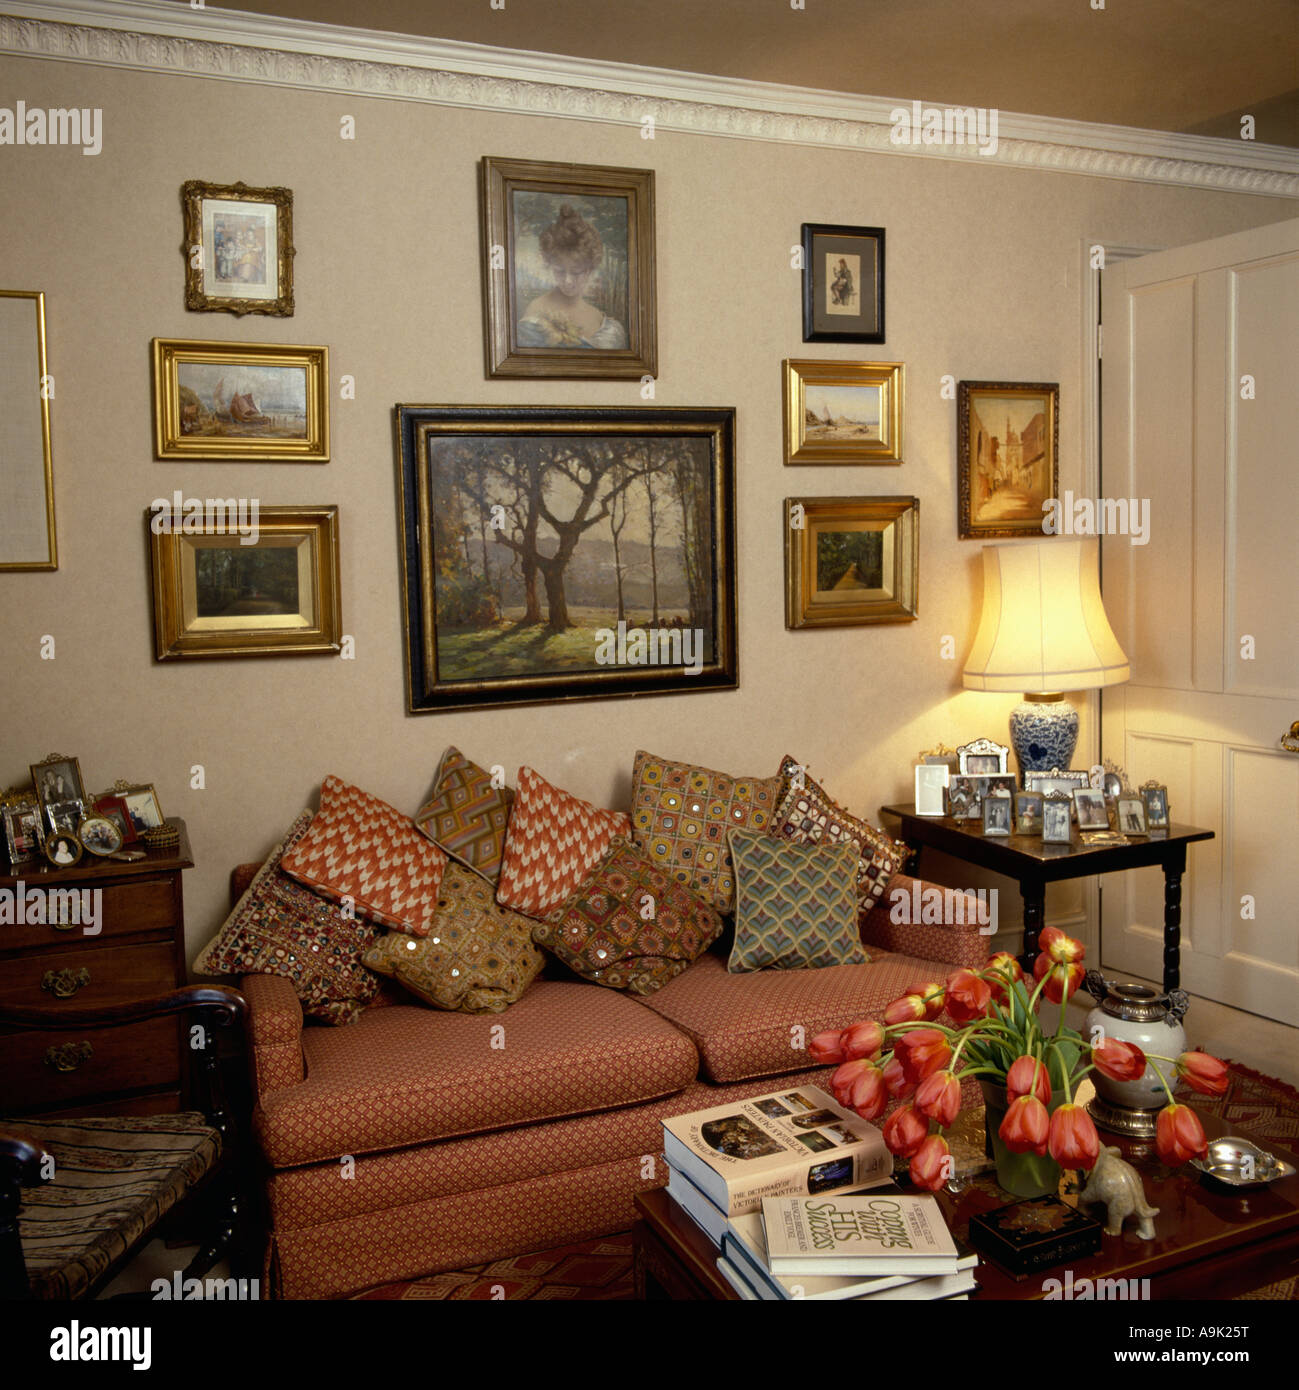 Group Of Pictures Above Terracotta Sofa Piled With